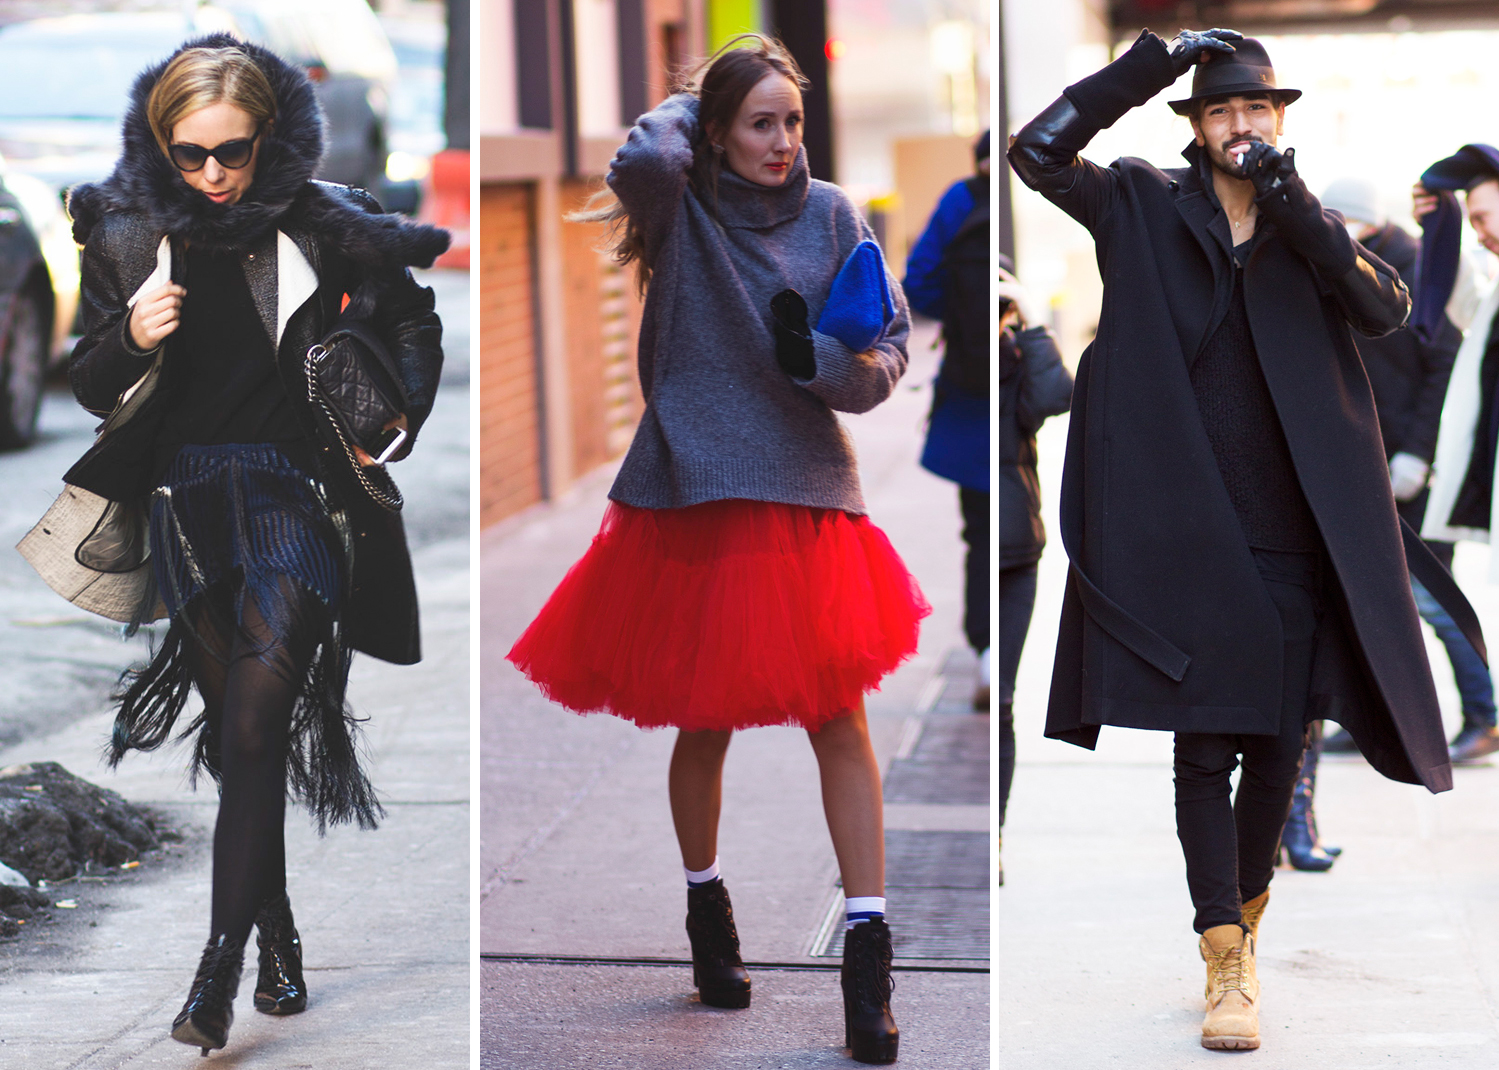 28 street style photos from last weekend at made fashion week sidewalk hustle Street style ny fashion week fall 2015